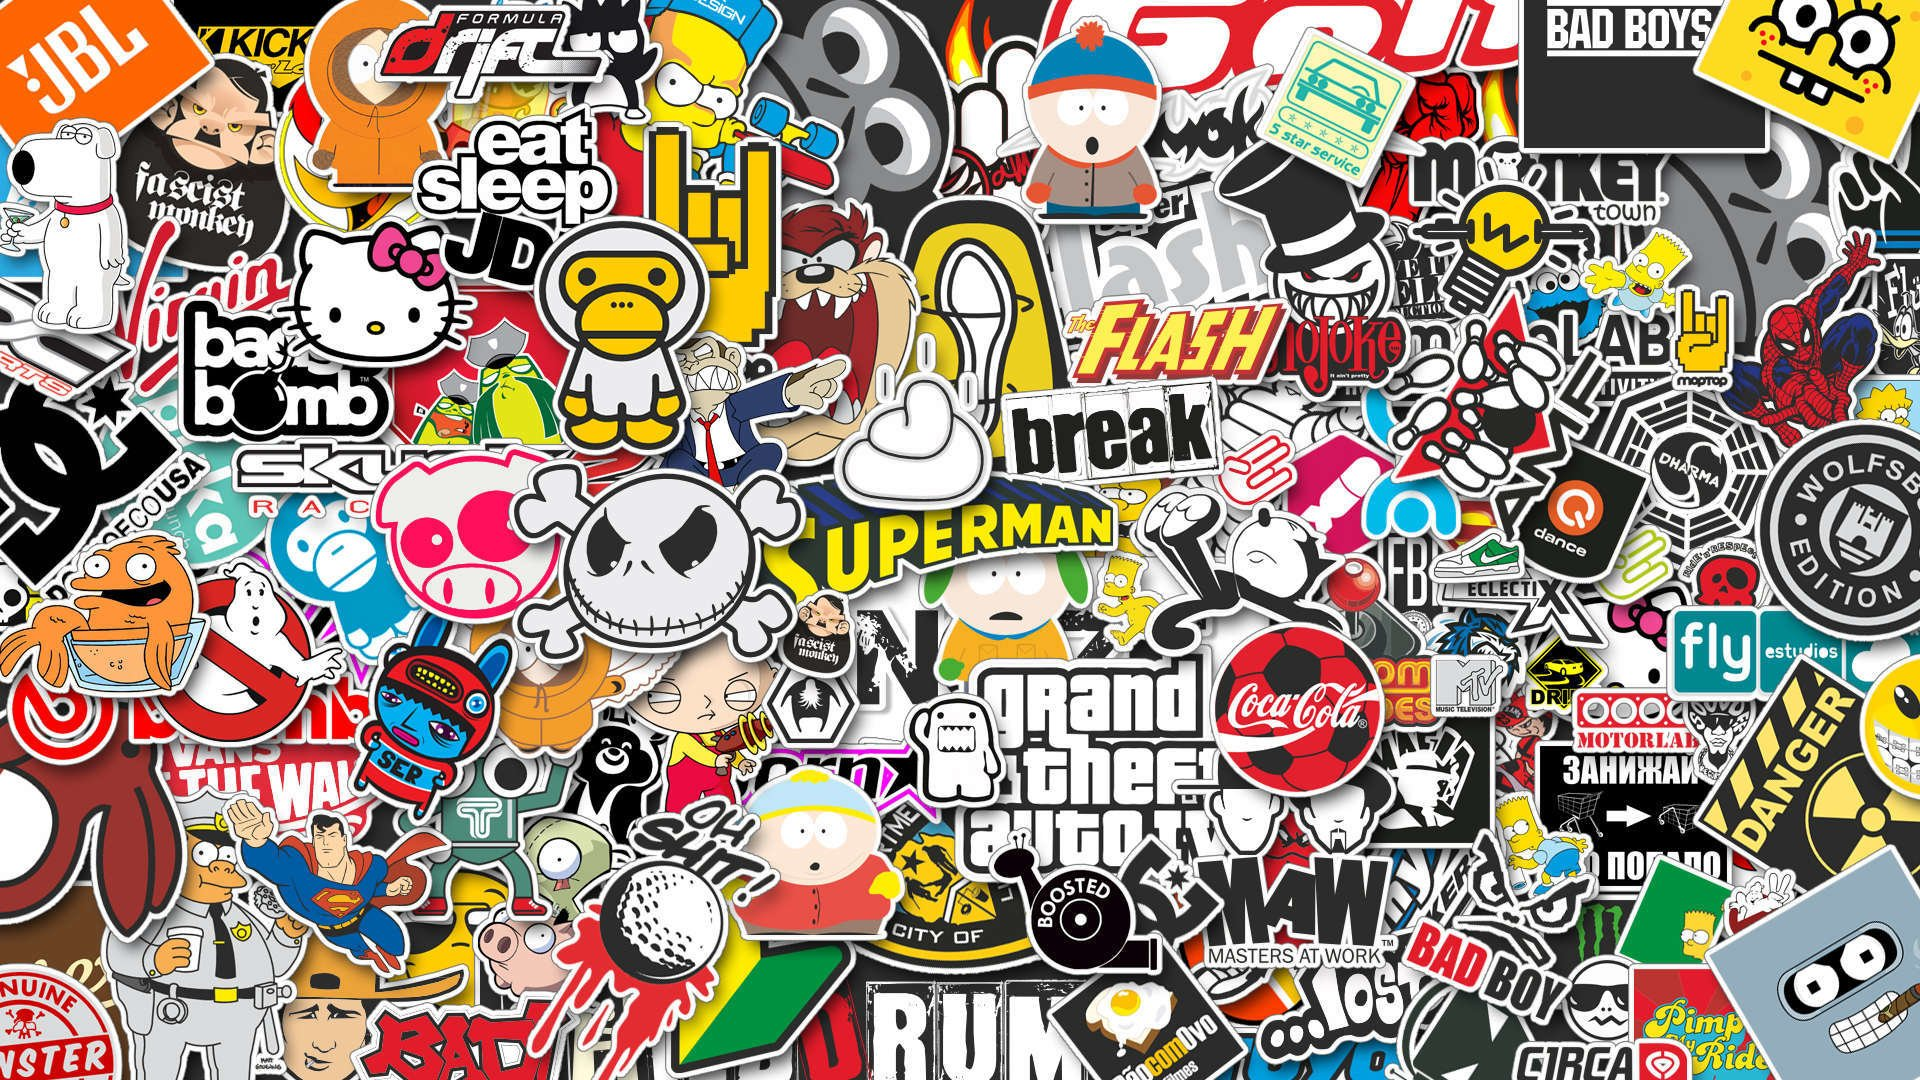 Sticker Wallpaper